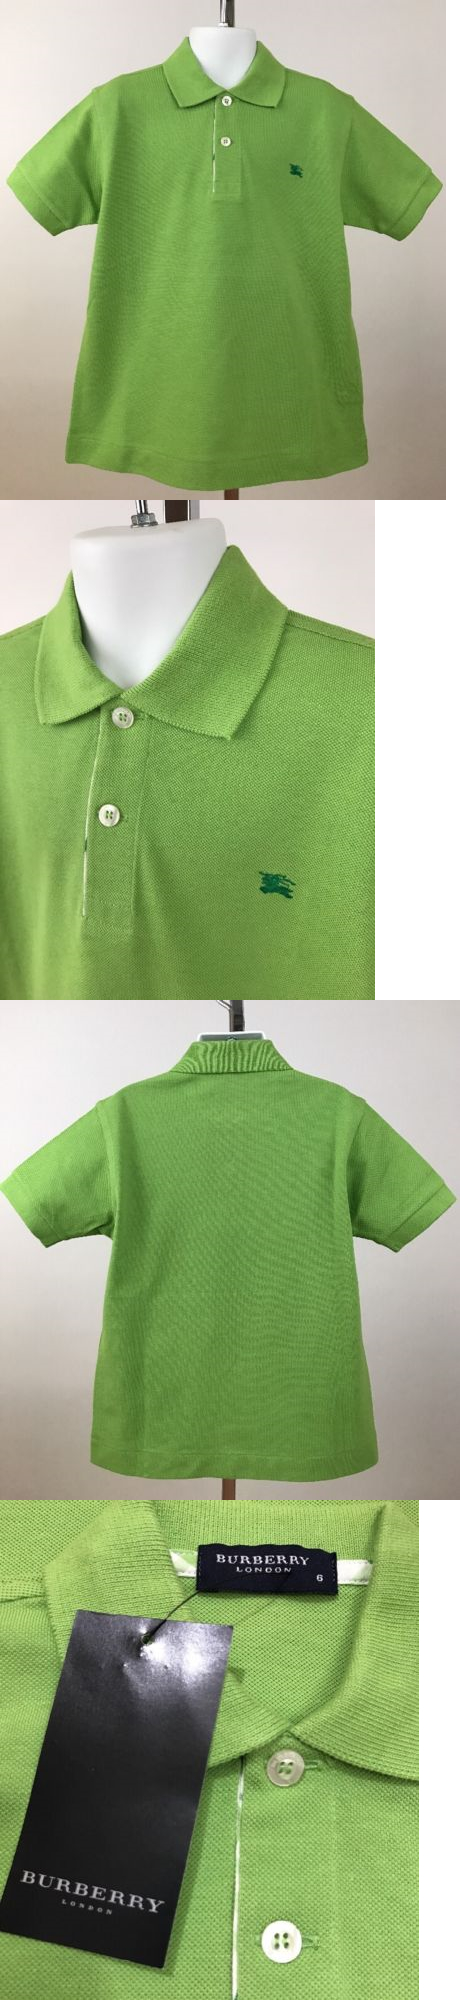 d1d881853 Tops Shirts and T-Shirts 175521  Nwt Burberry London Boy S Lime Green Polo  Shirt Sz 6Y -  BUY IT NOW ONLY   49 on eBay!